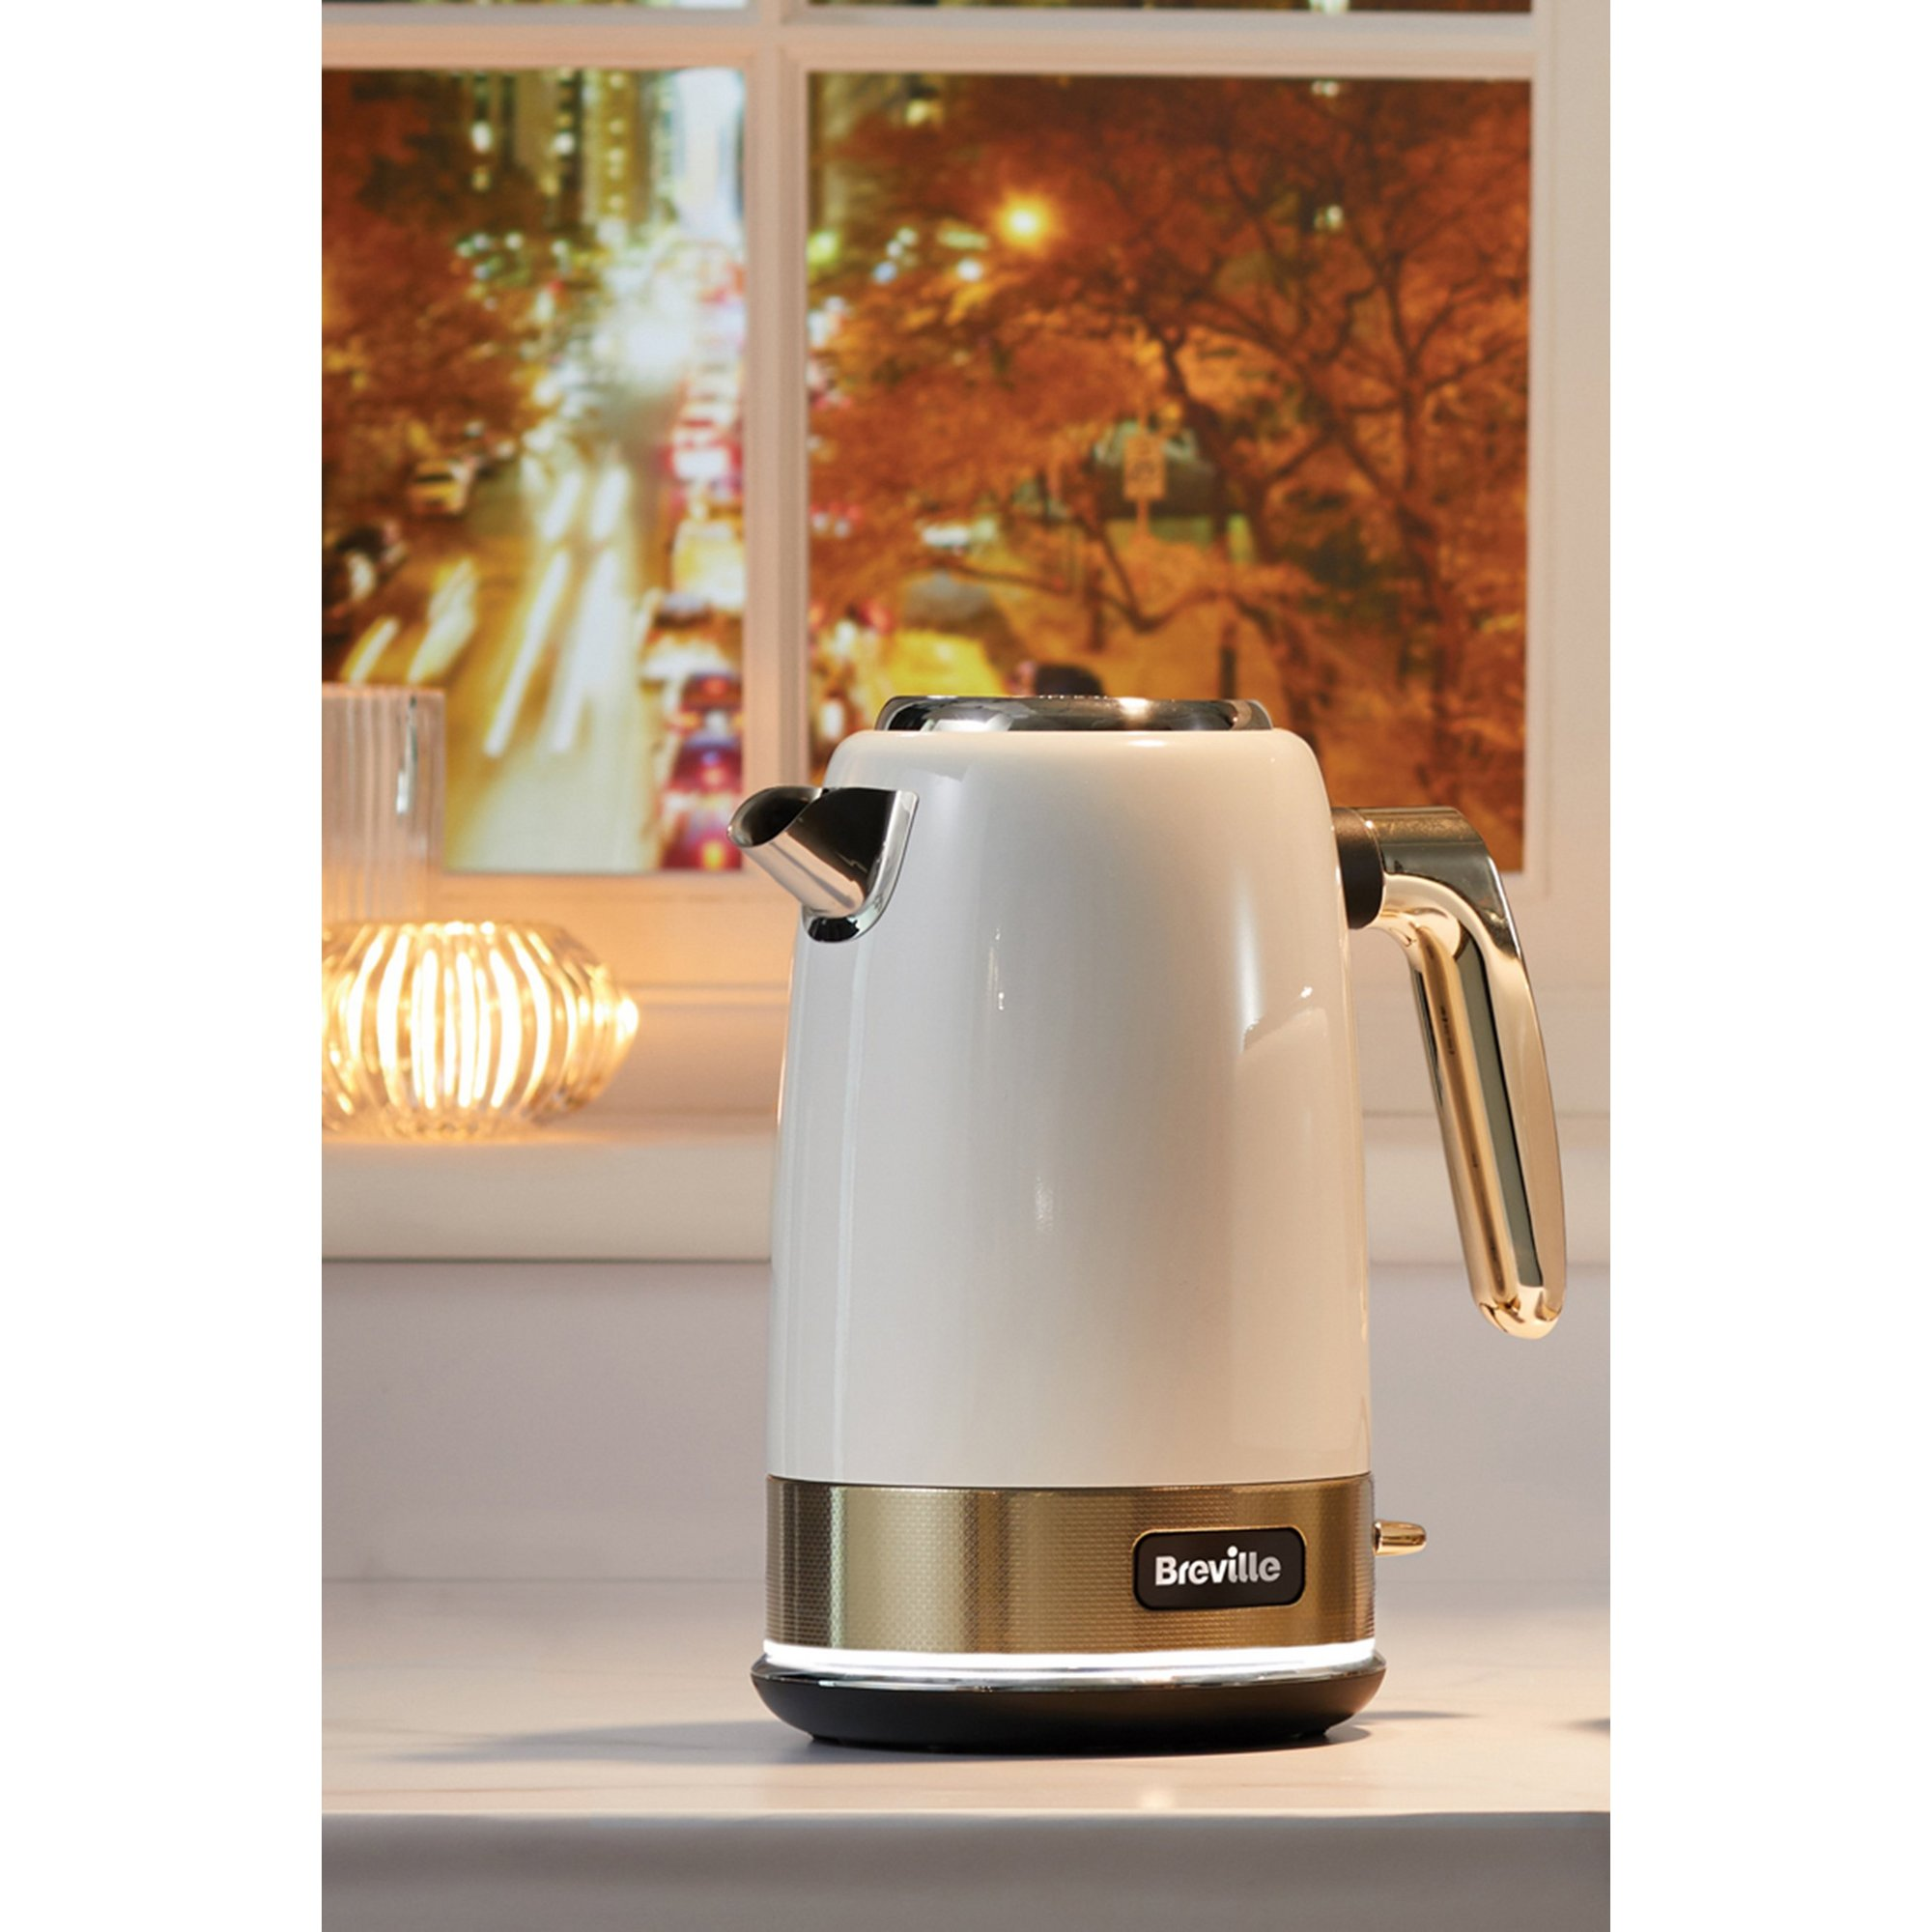 Image of Breville New York Collection Kettle